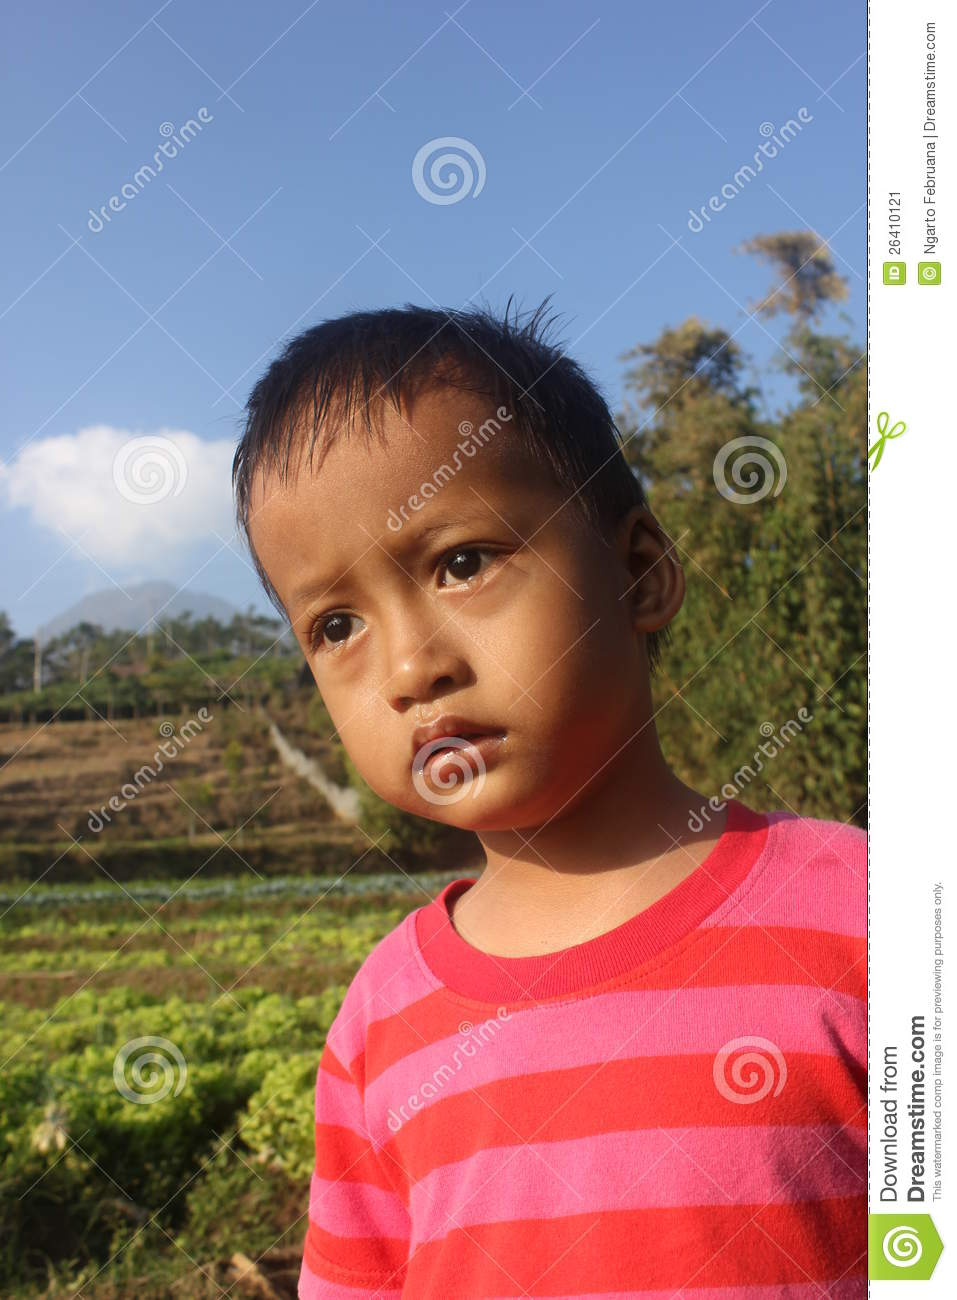 Glancing child stock photo. Image of concealing, carousel